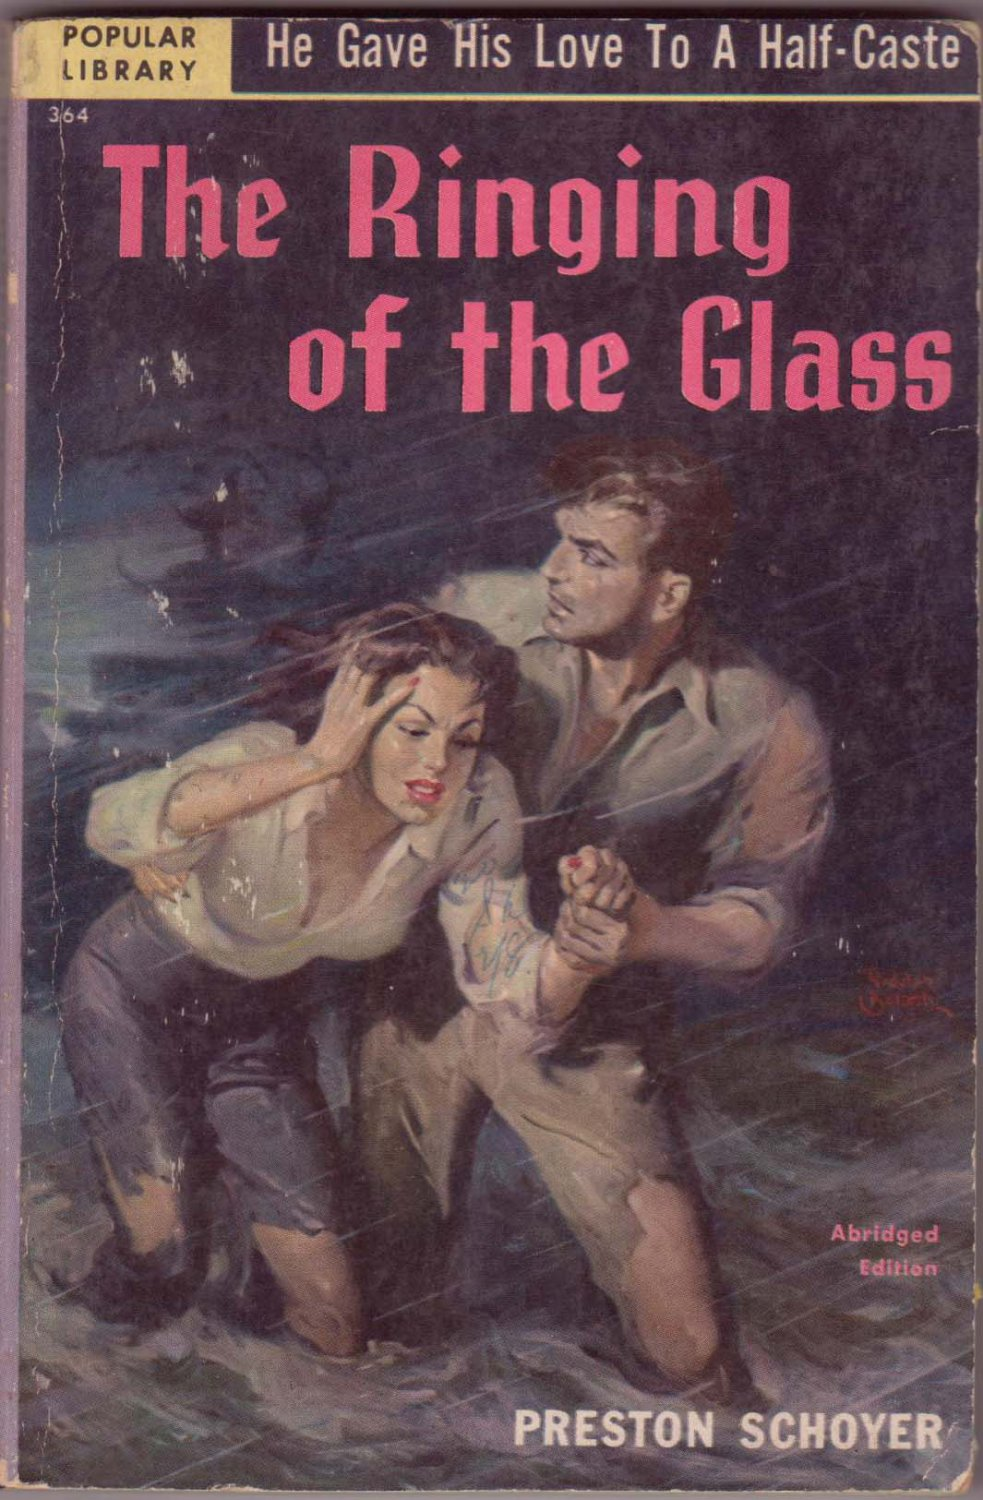 The Ringing Of The Glass, Schoyer, Vintage Paperback Book, Popular Library #364, Mystery